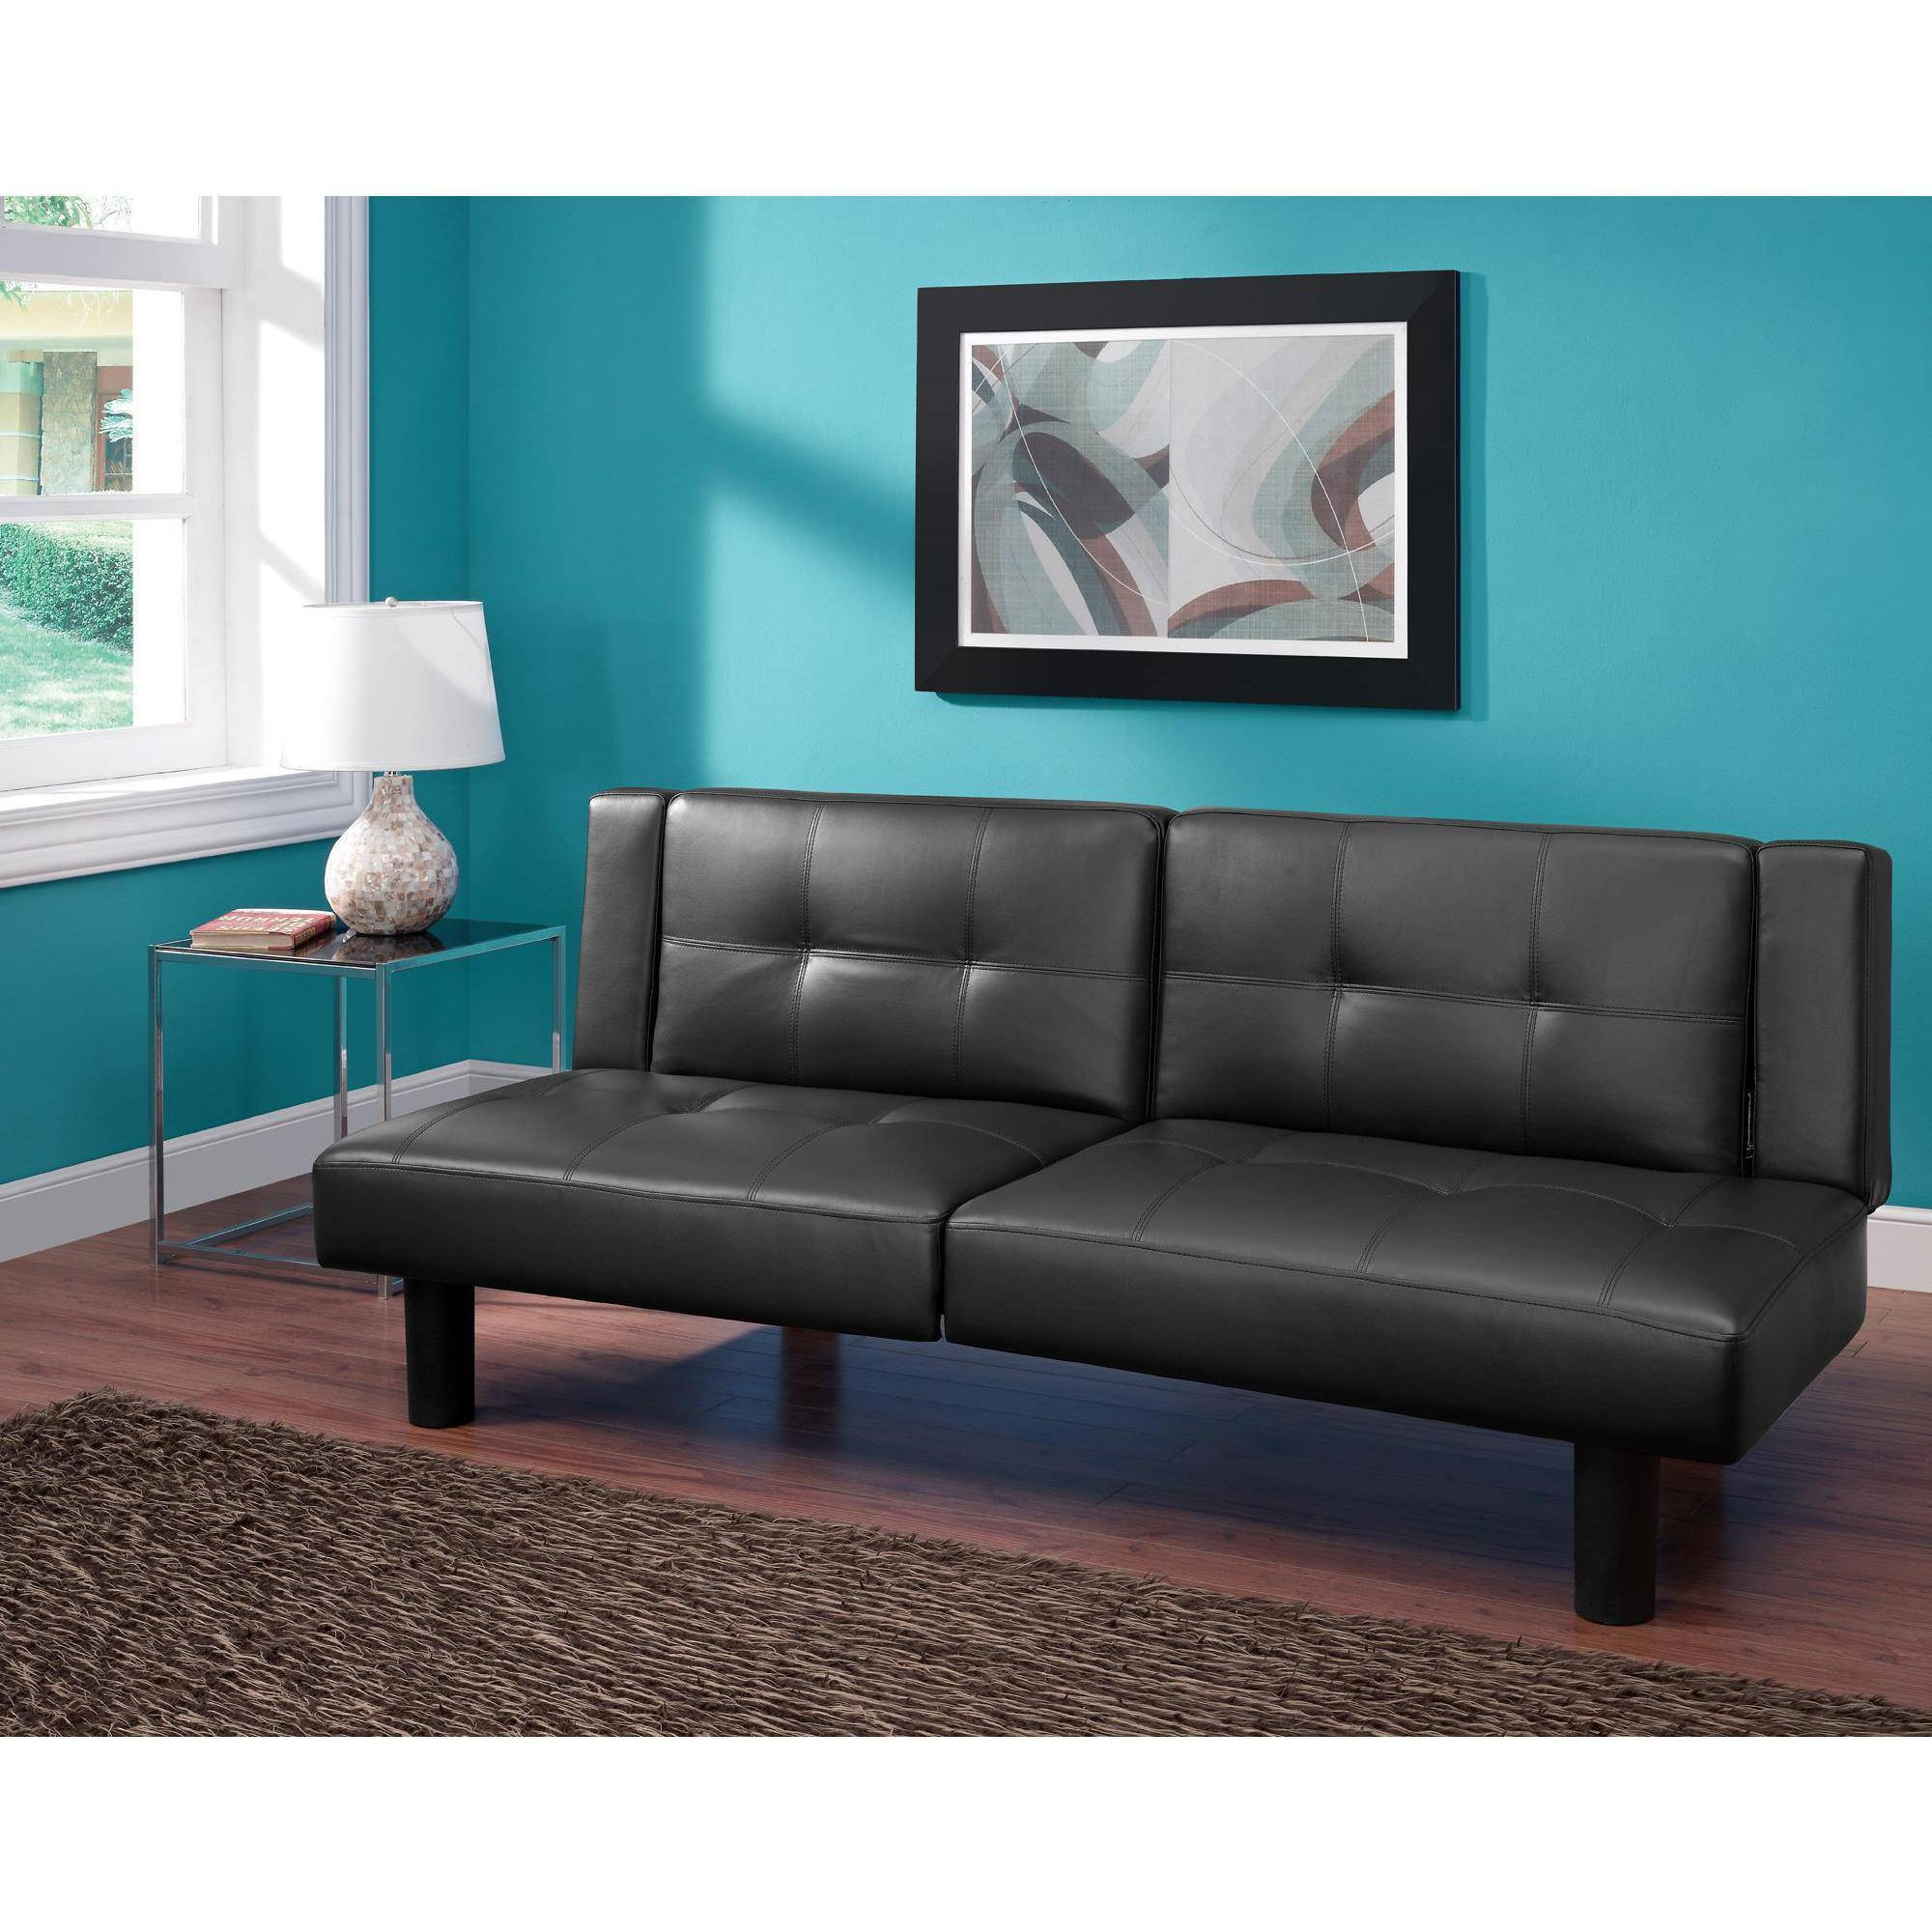 Mainstay Sofa Sleeper | Centerfieldbar with regard to Mainstay Sofas (Image 11 of 15)